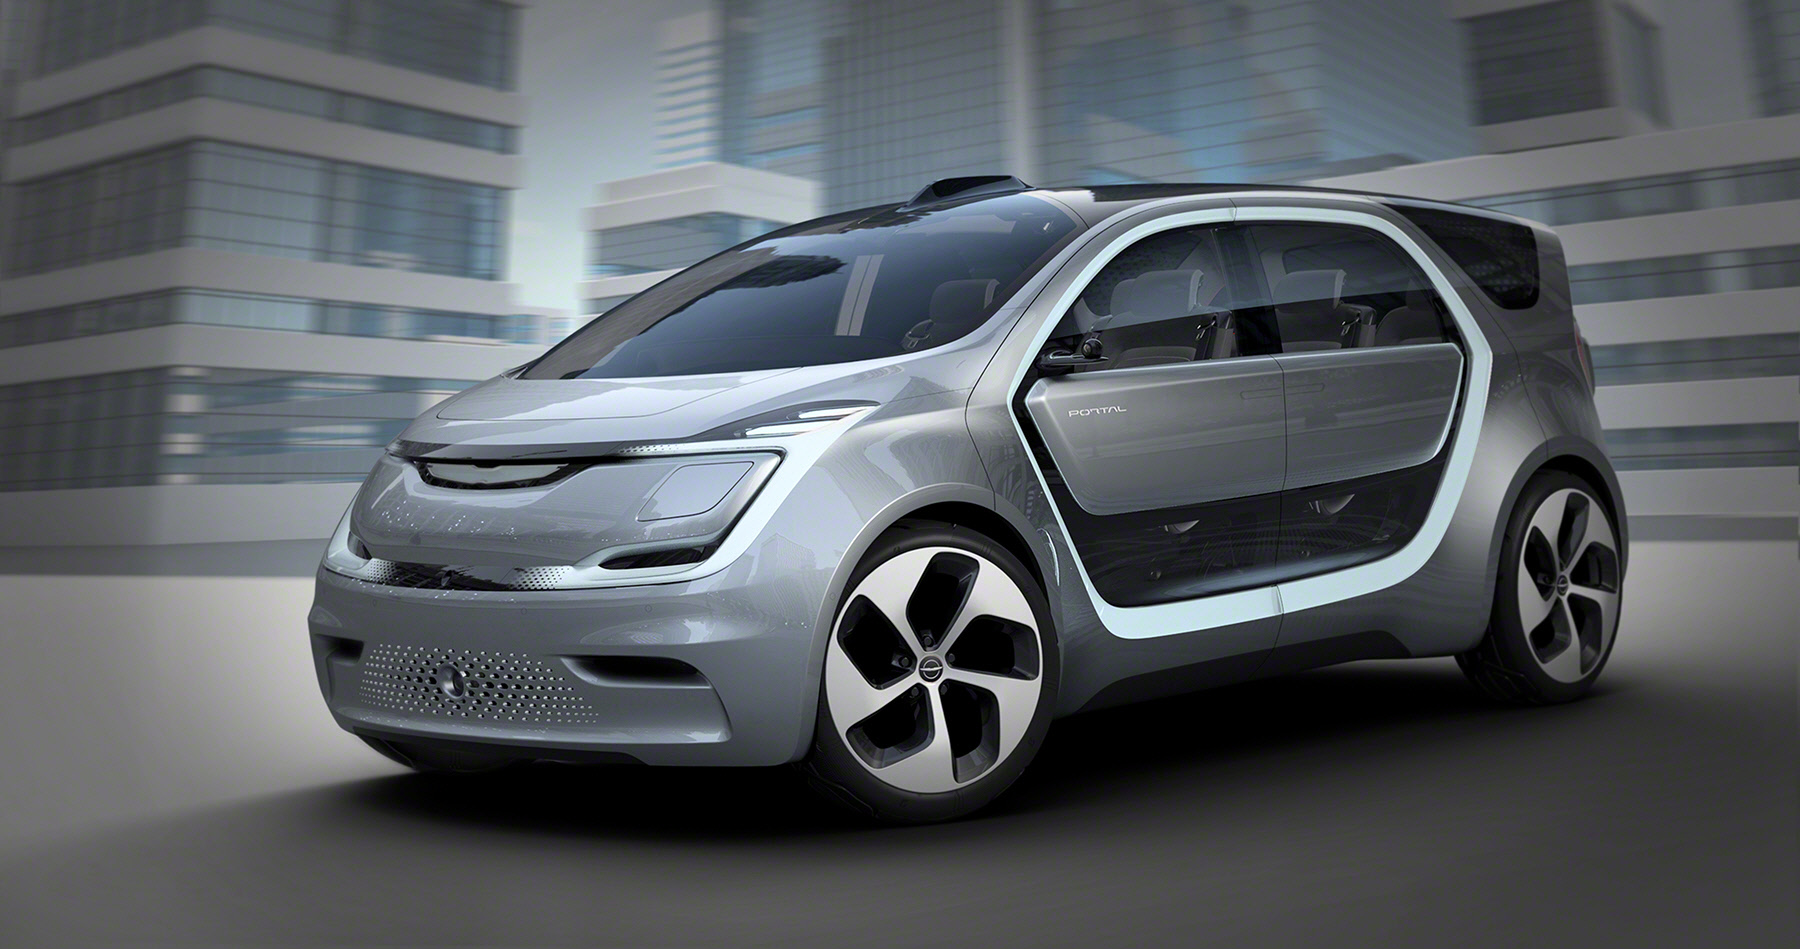 Fiat Chrysler Automobiles reveals its Chrysler Portal concept vehicle at CES in Las Vegas on Tuesday, January 3, 2017.